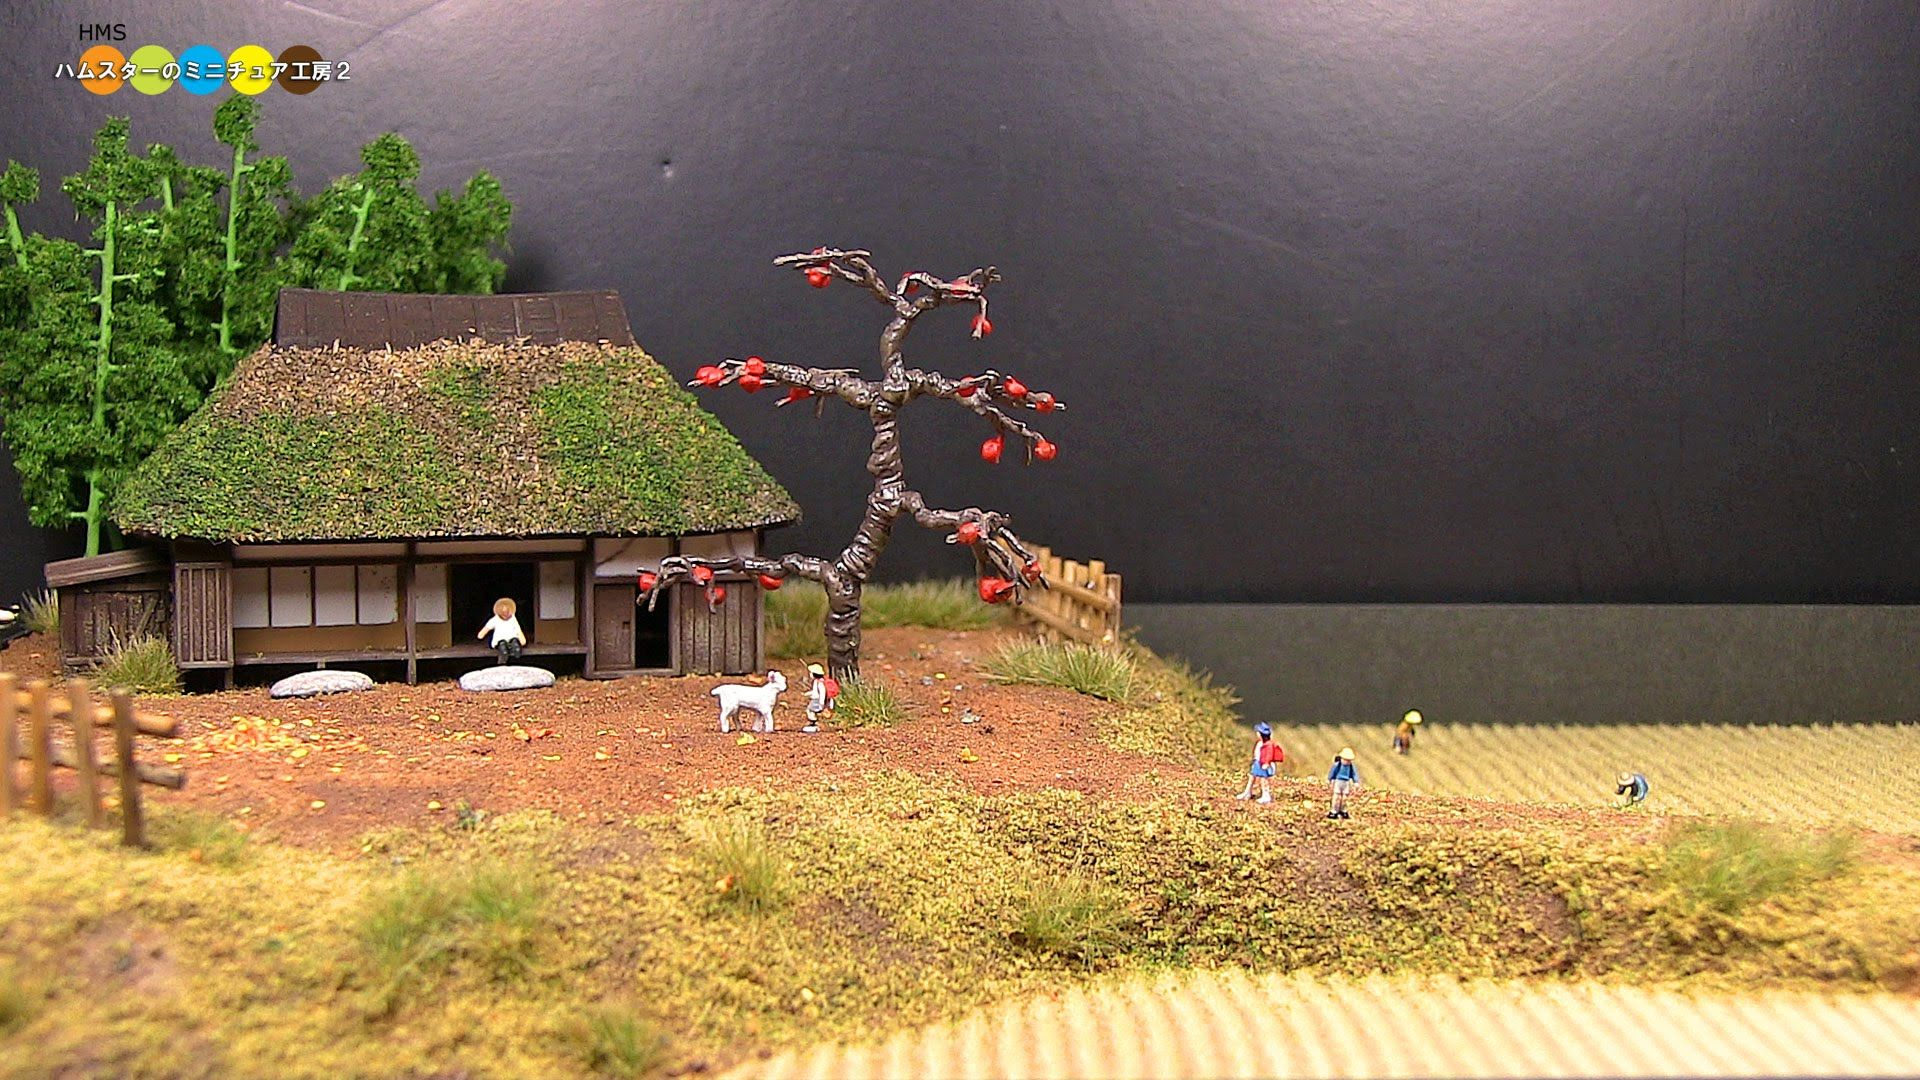 Diorama Autumn Countryside ミニチュア秋の田園風景作り Model Railroad Model Trains Model Train Layouts